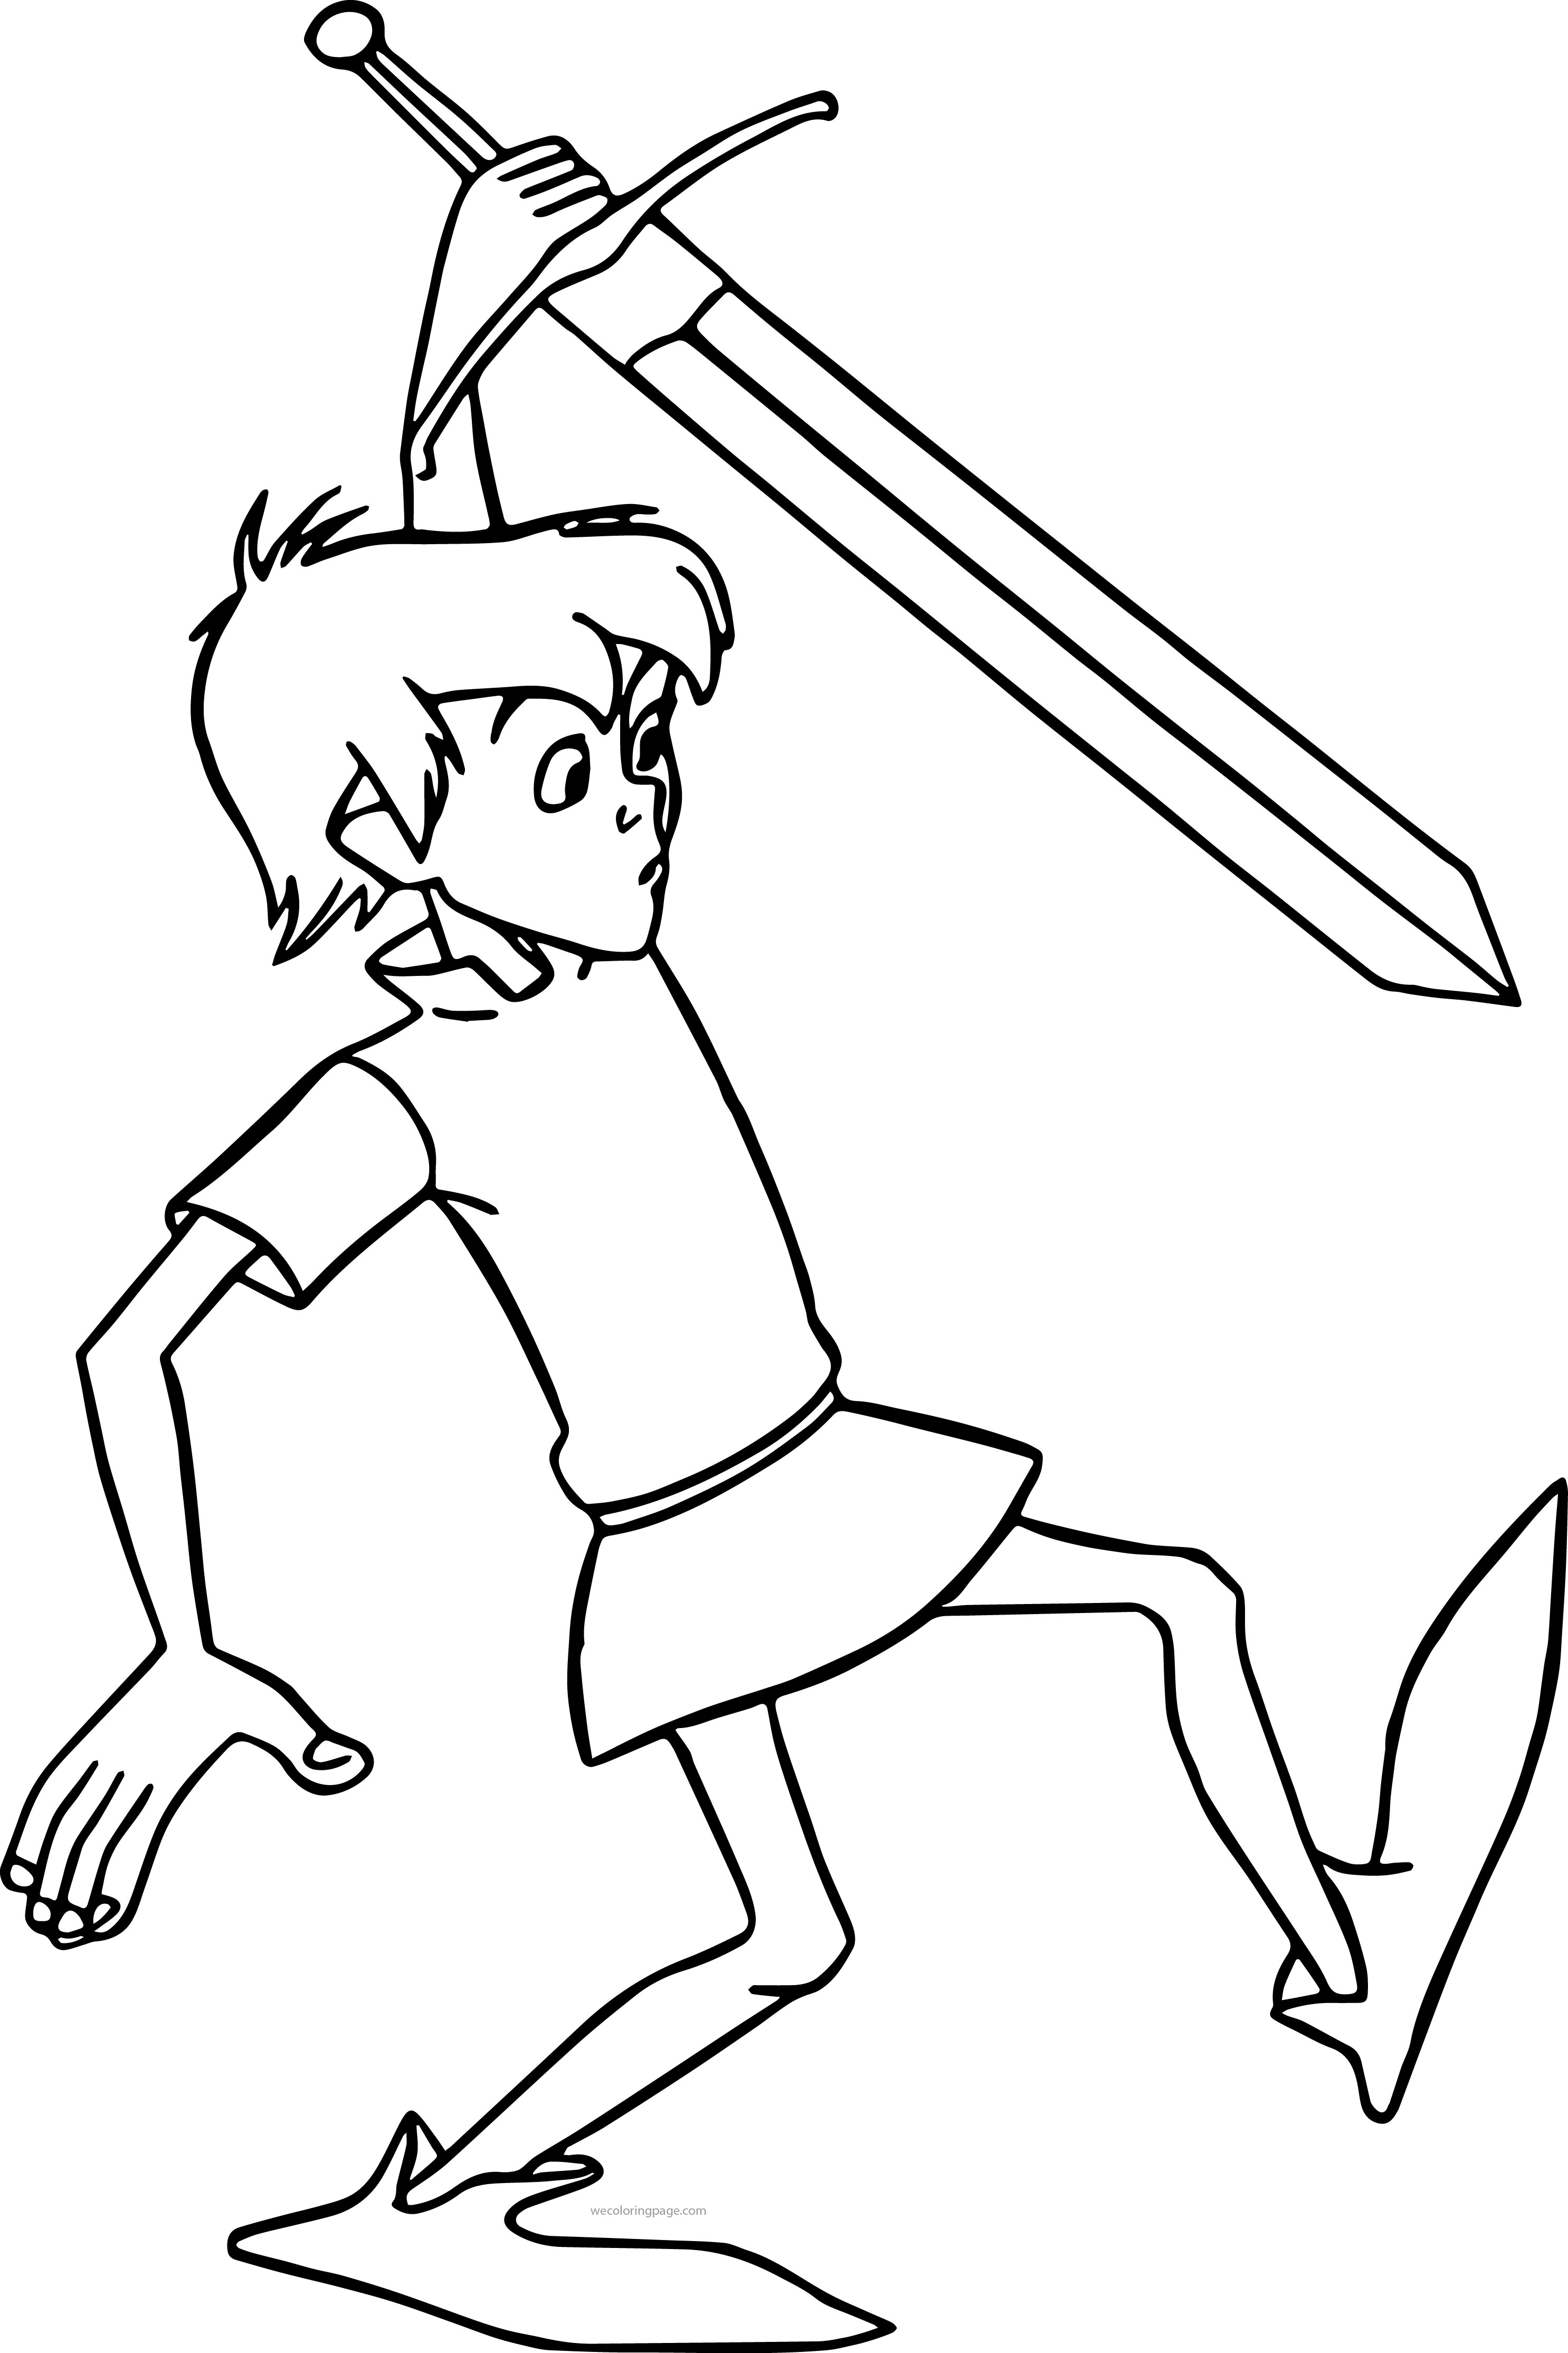 2971x4458 The Sword In Stone Arthur Coloring Pages S On Sword And The Stone